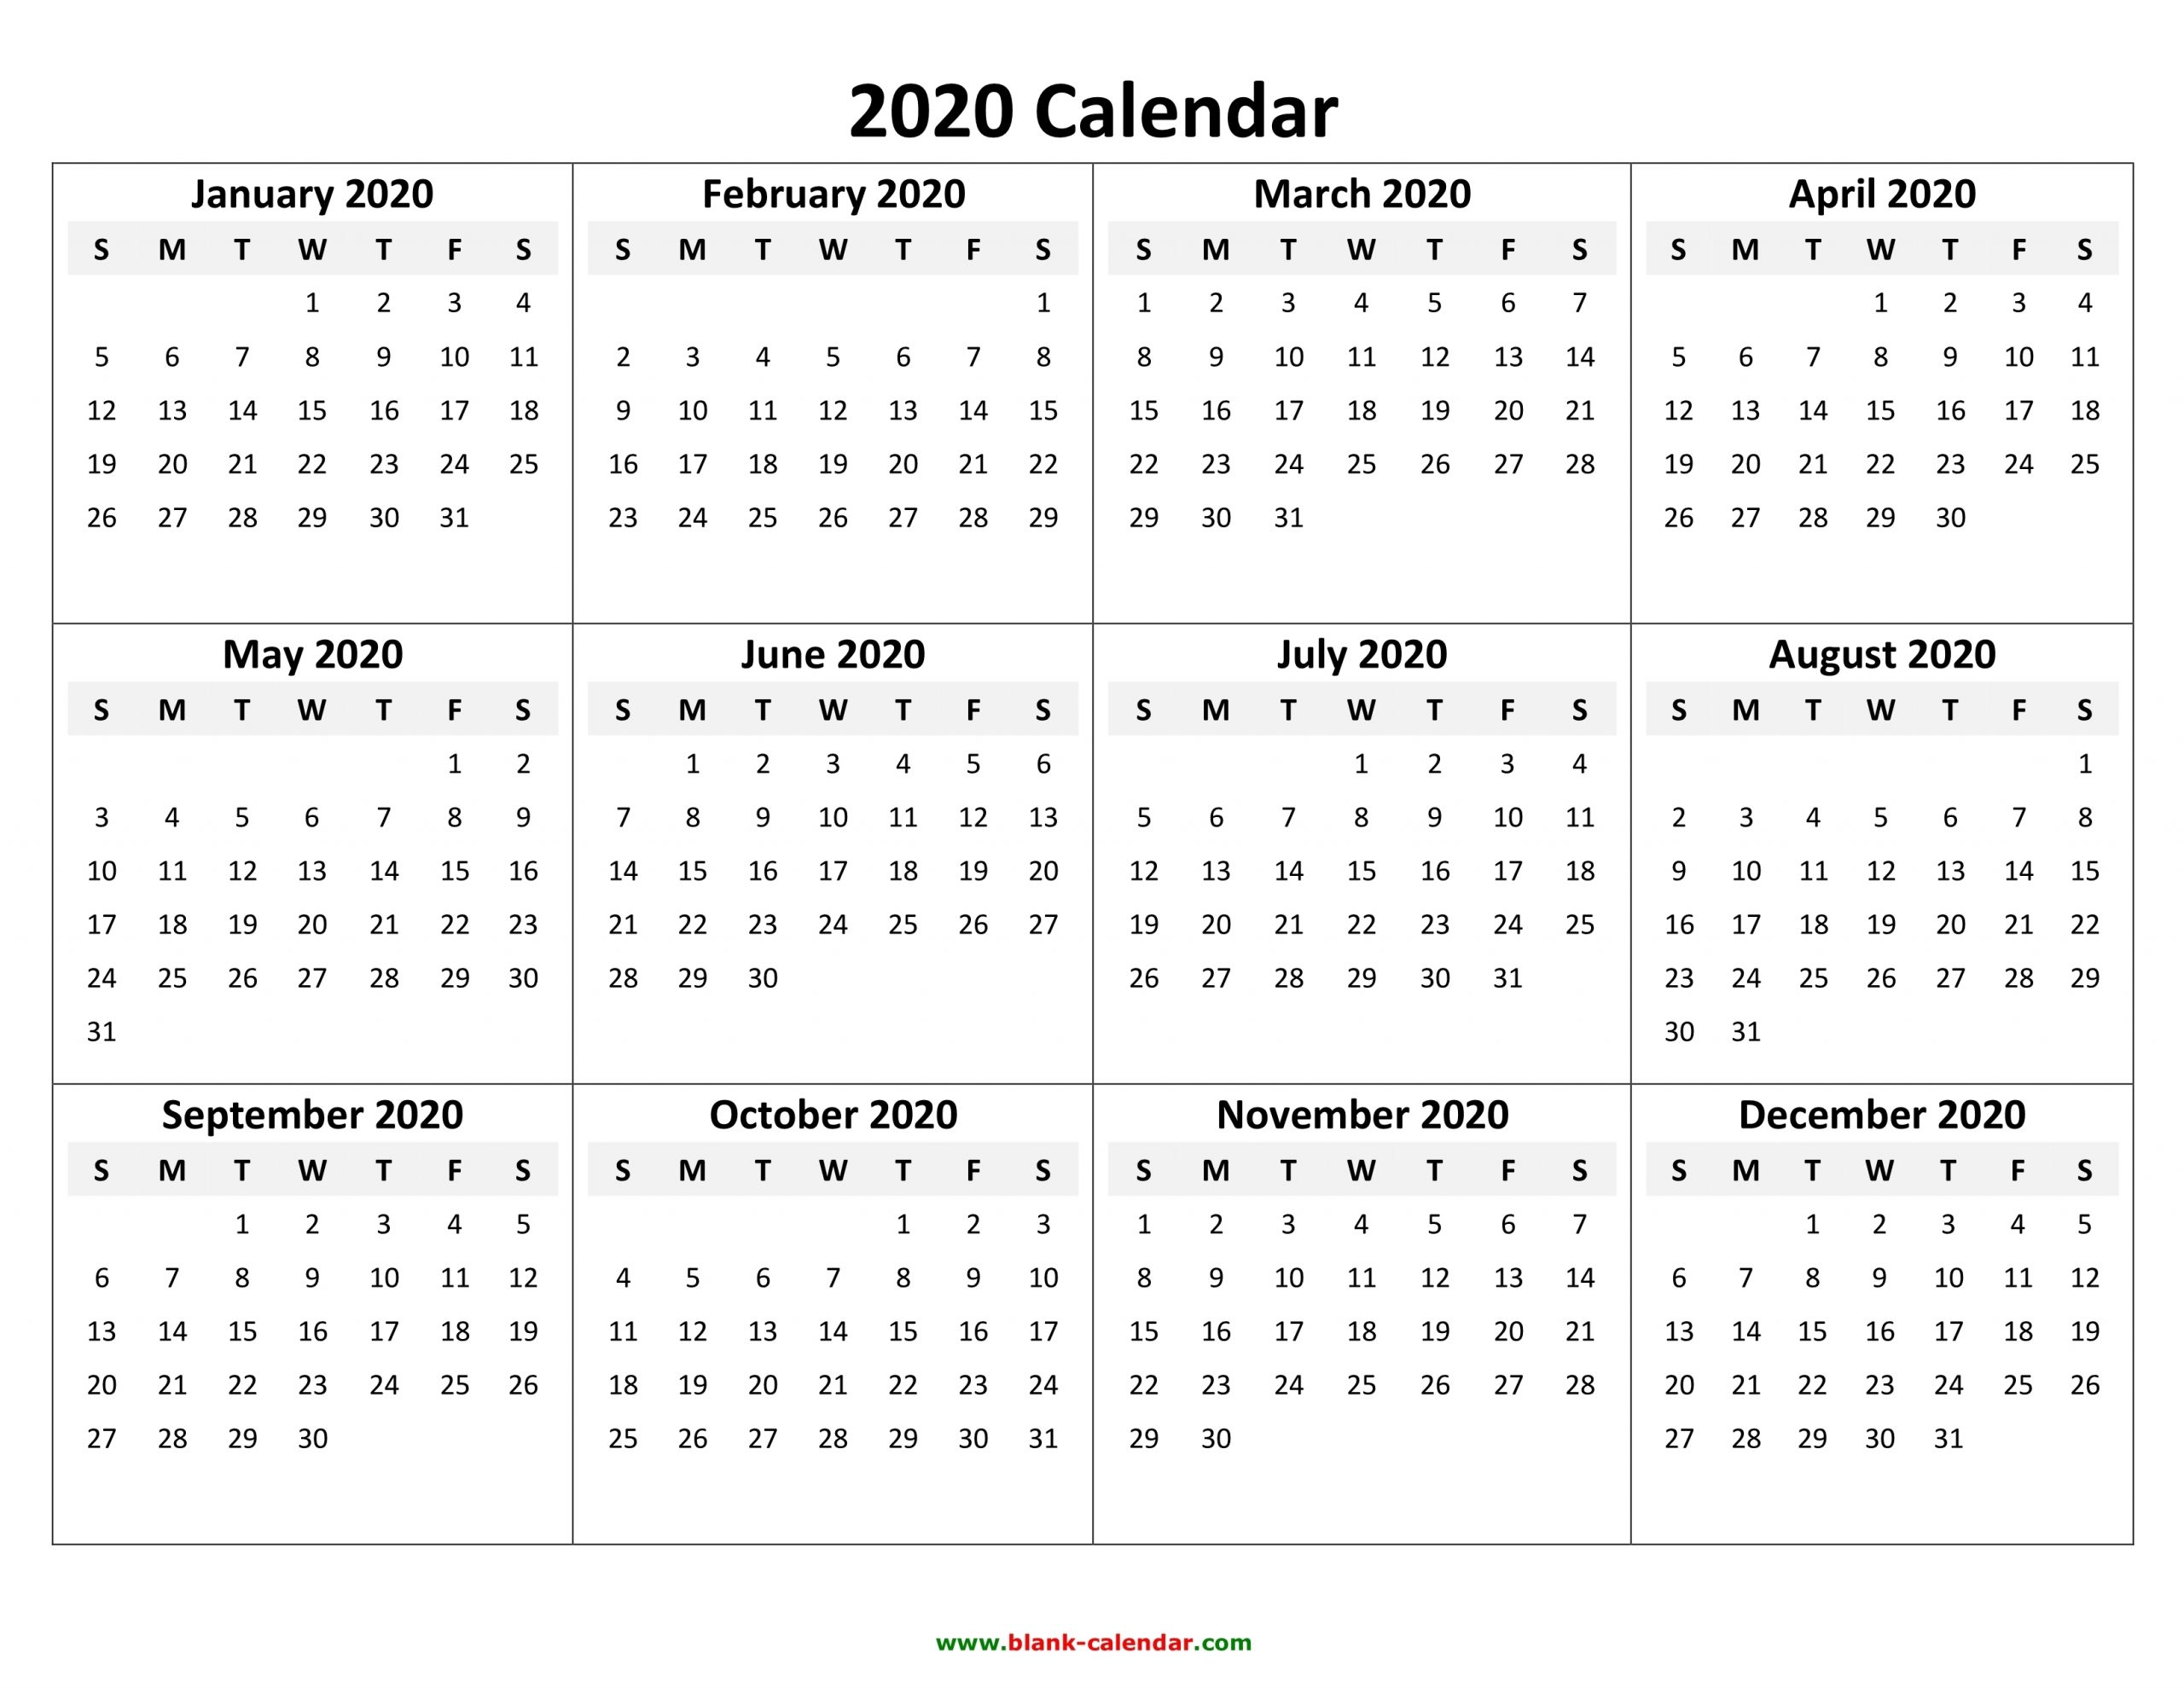 Yearly Calendar 2020 | Free Download And Print pertaining to Monday To Sunday Calendar 2020 Yearly